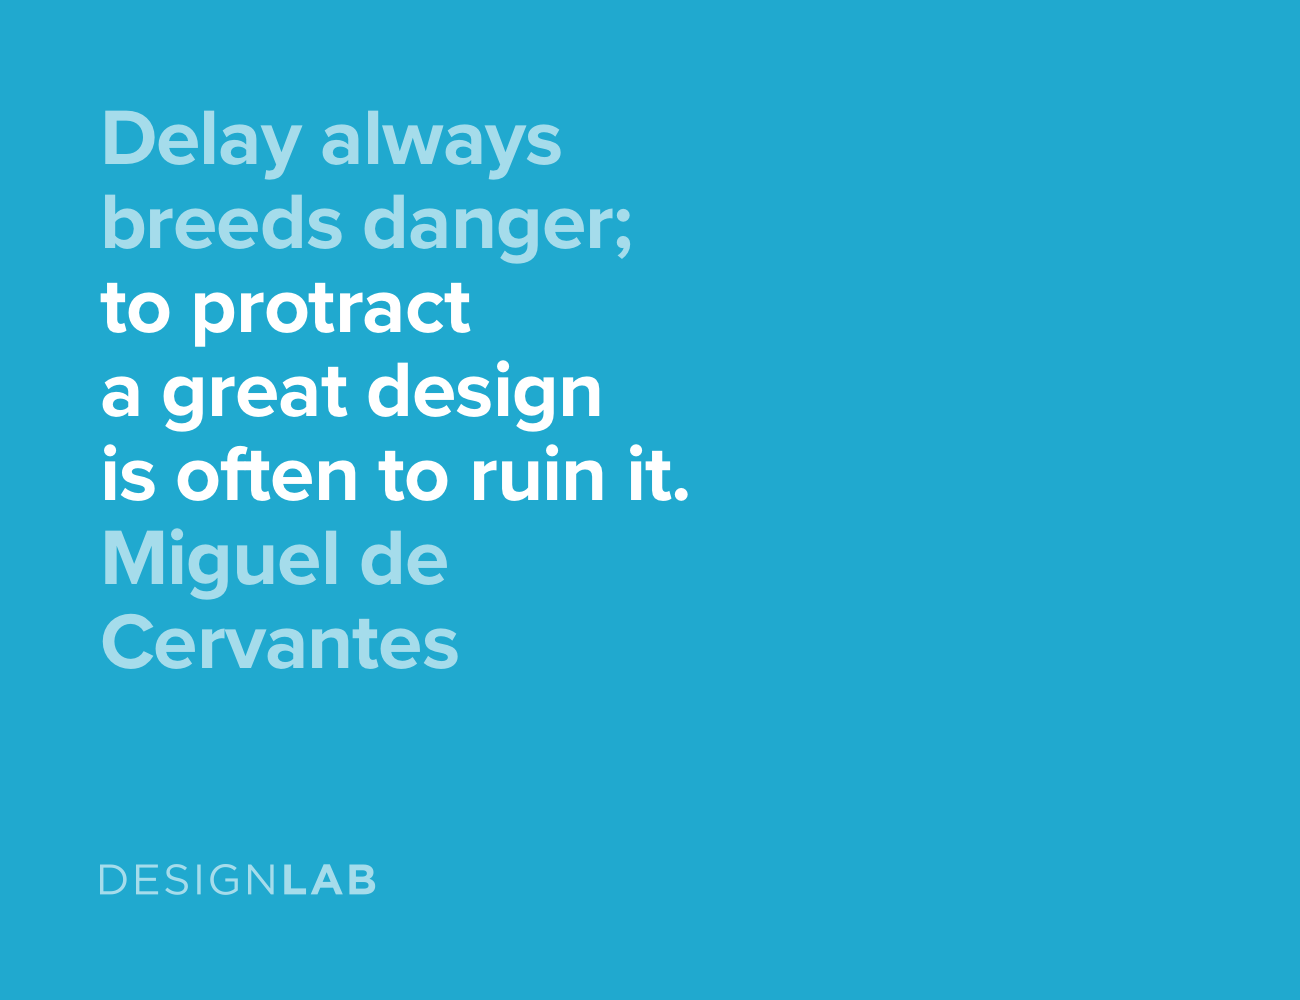 Delay always breeds danger. To protract a great design is often to ruin it. Miguel de Cervantes